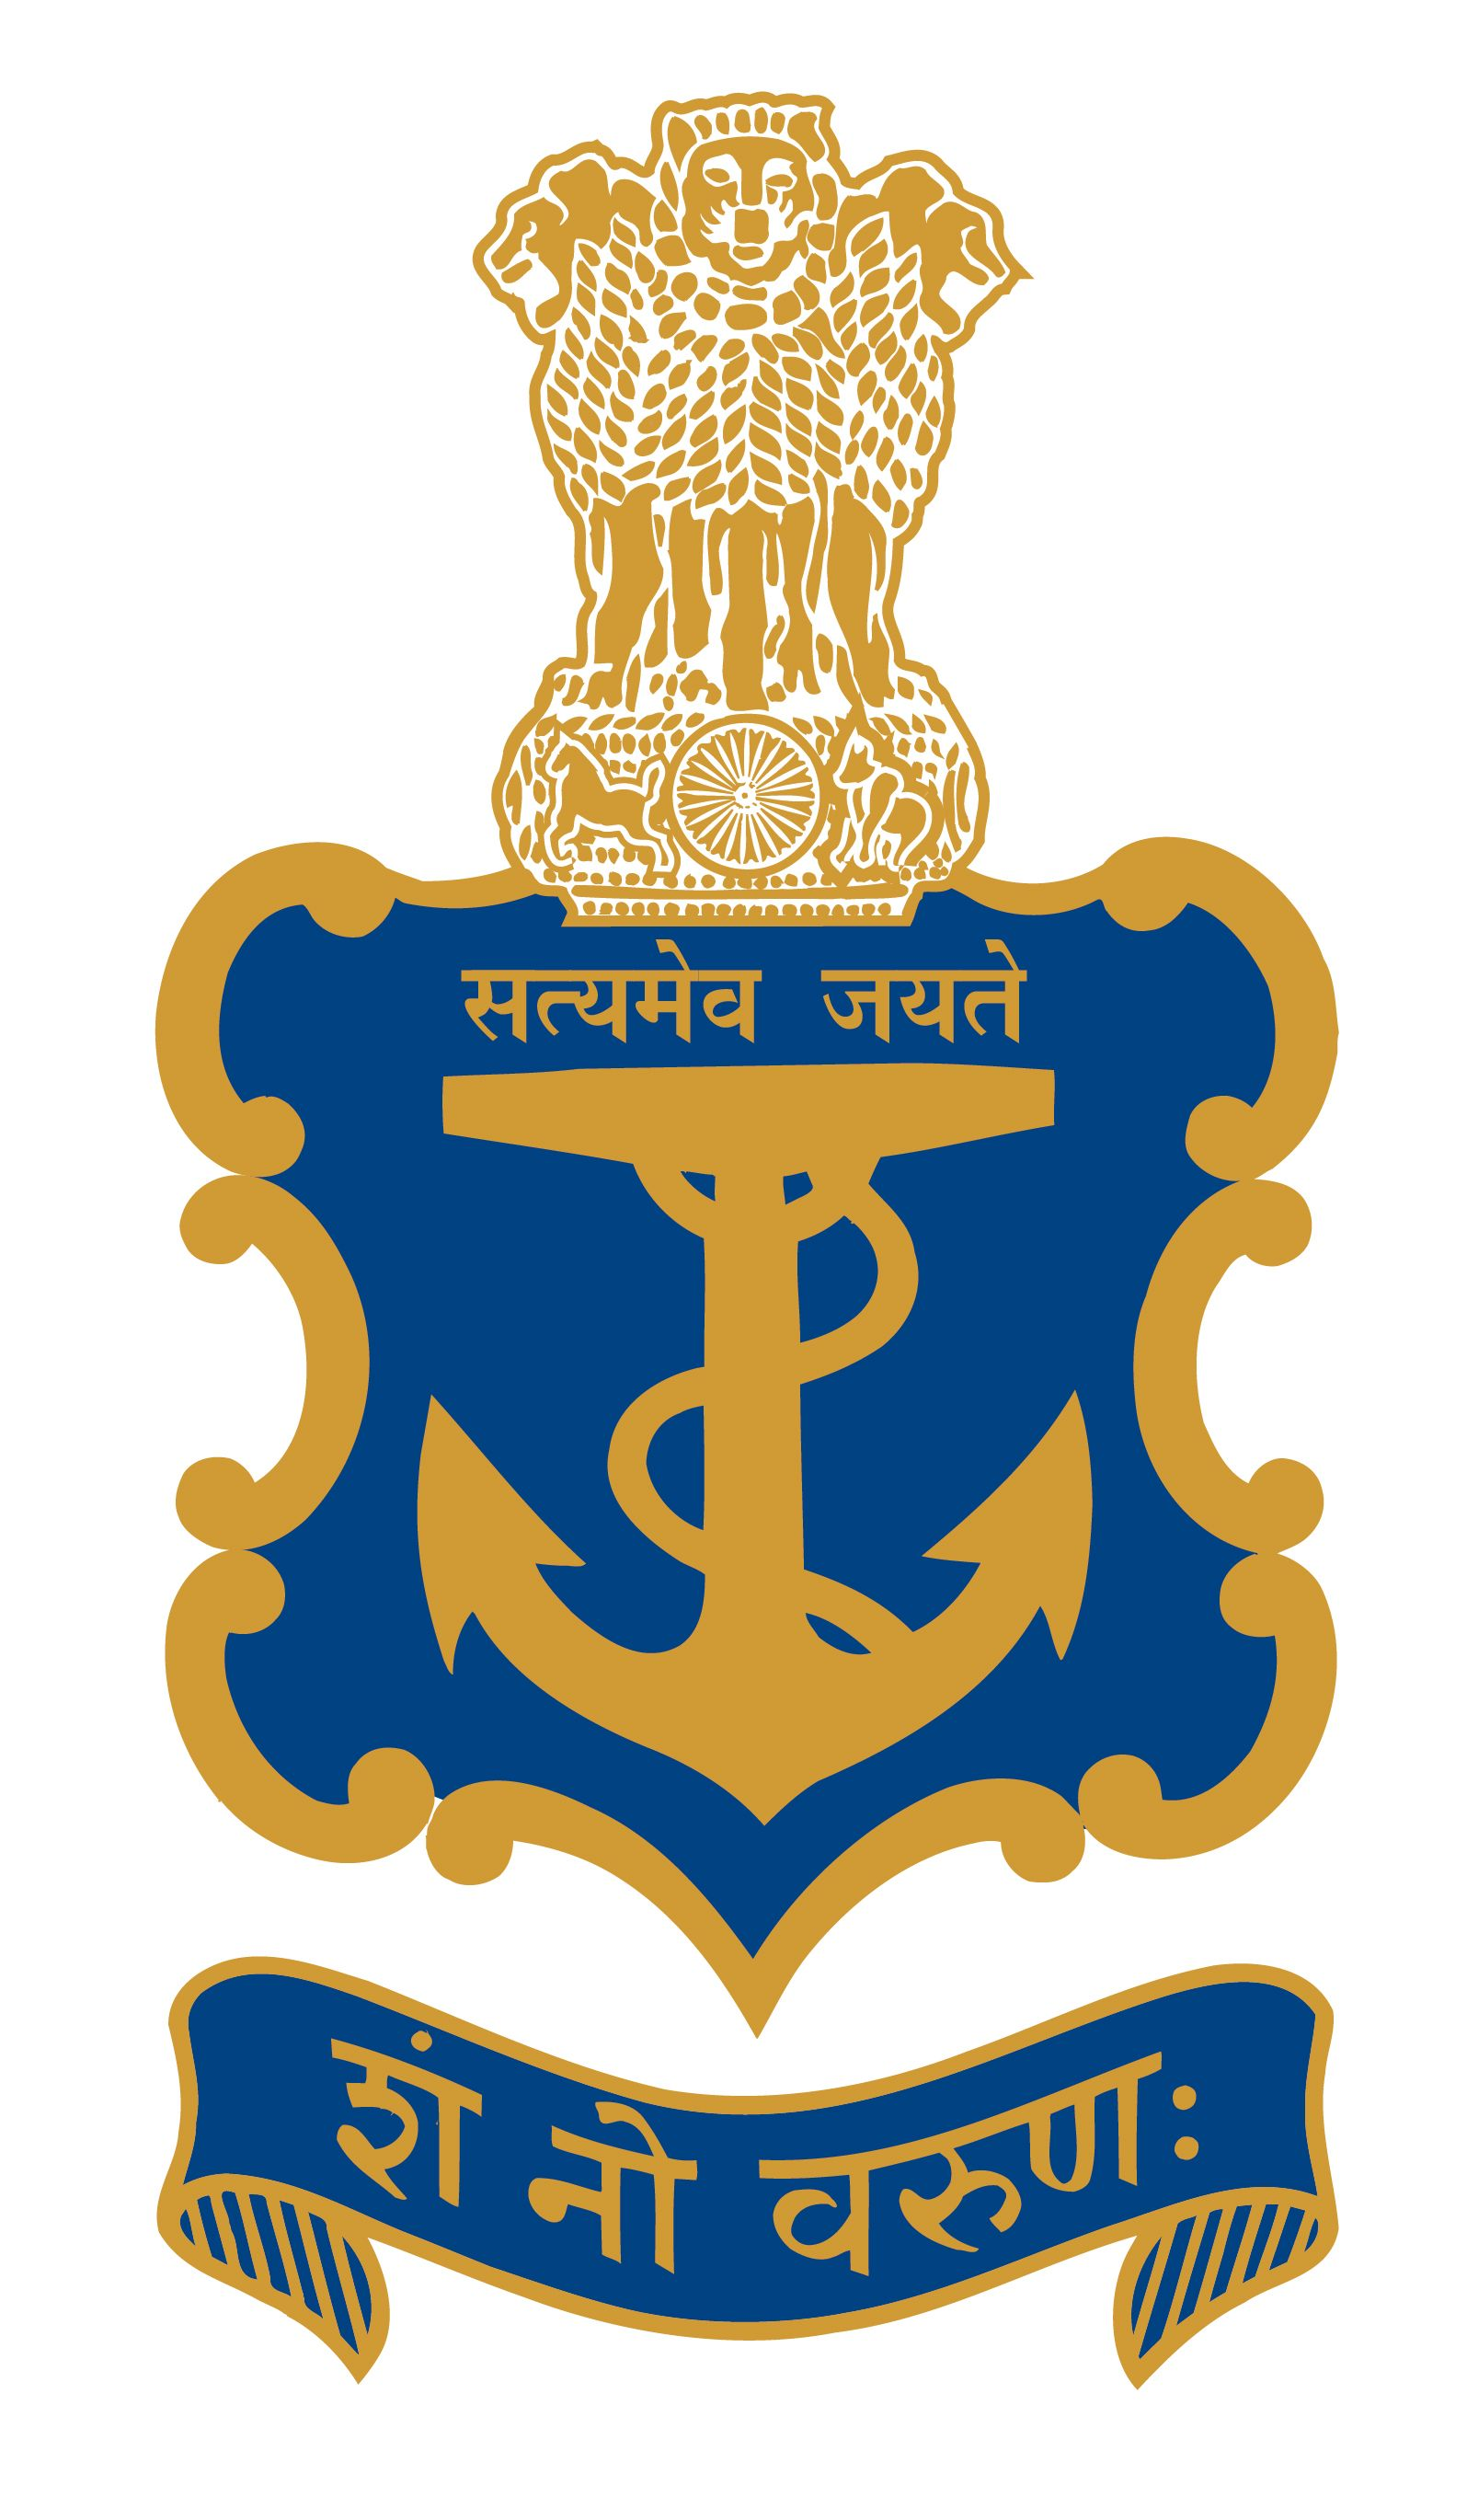 THE INDIAN NAVY in 2020 (With images) Indian navy